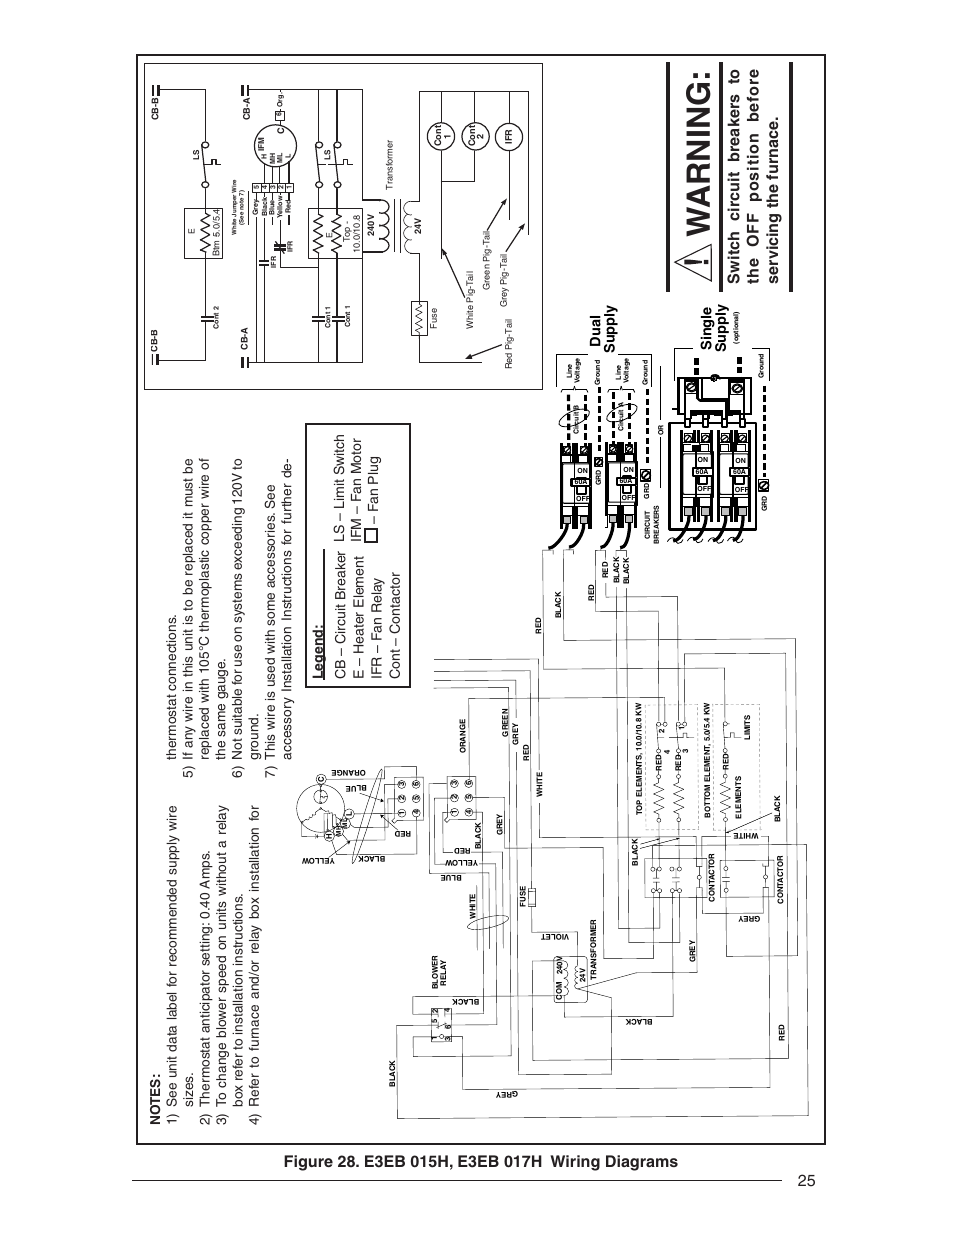 Wiring Diagram For Mobile Home Furnace : Warning single suppl y dual nordyne e series